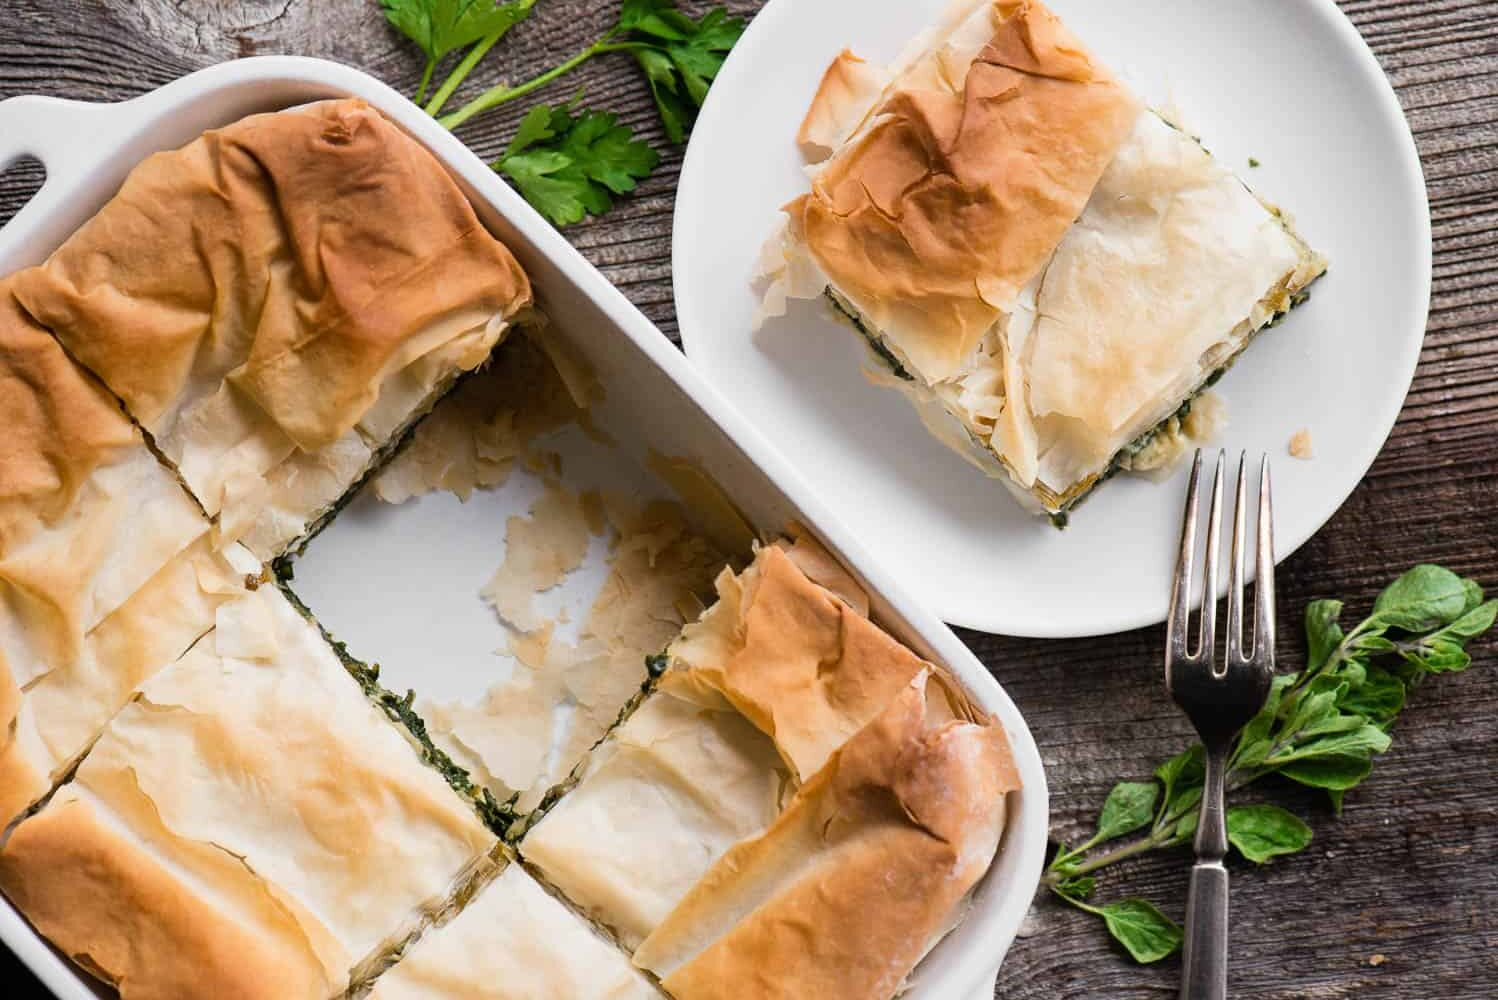 large serving of spanakopita